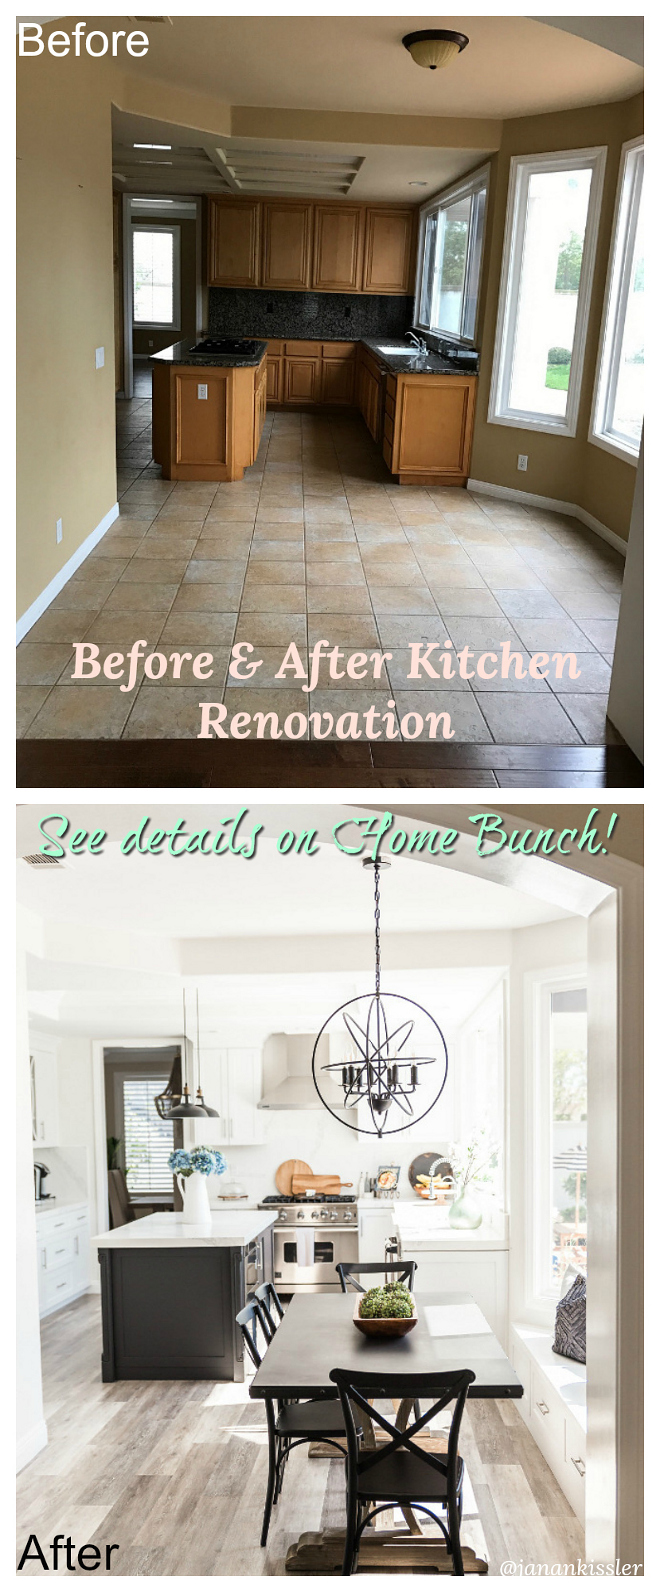 Before and after Kitchen renovation pictures Before and after Kitchen renovation picture ideas Before and after Kitchen renovation inspiration #Beforeandafter #BeforeandafterKitchen #Beforeandafterrenovation #Beforeandafterpictures